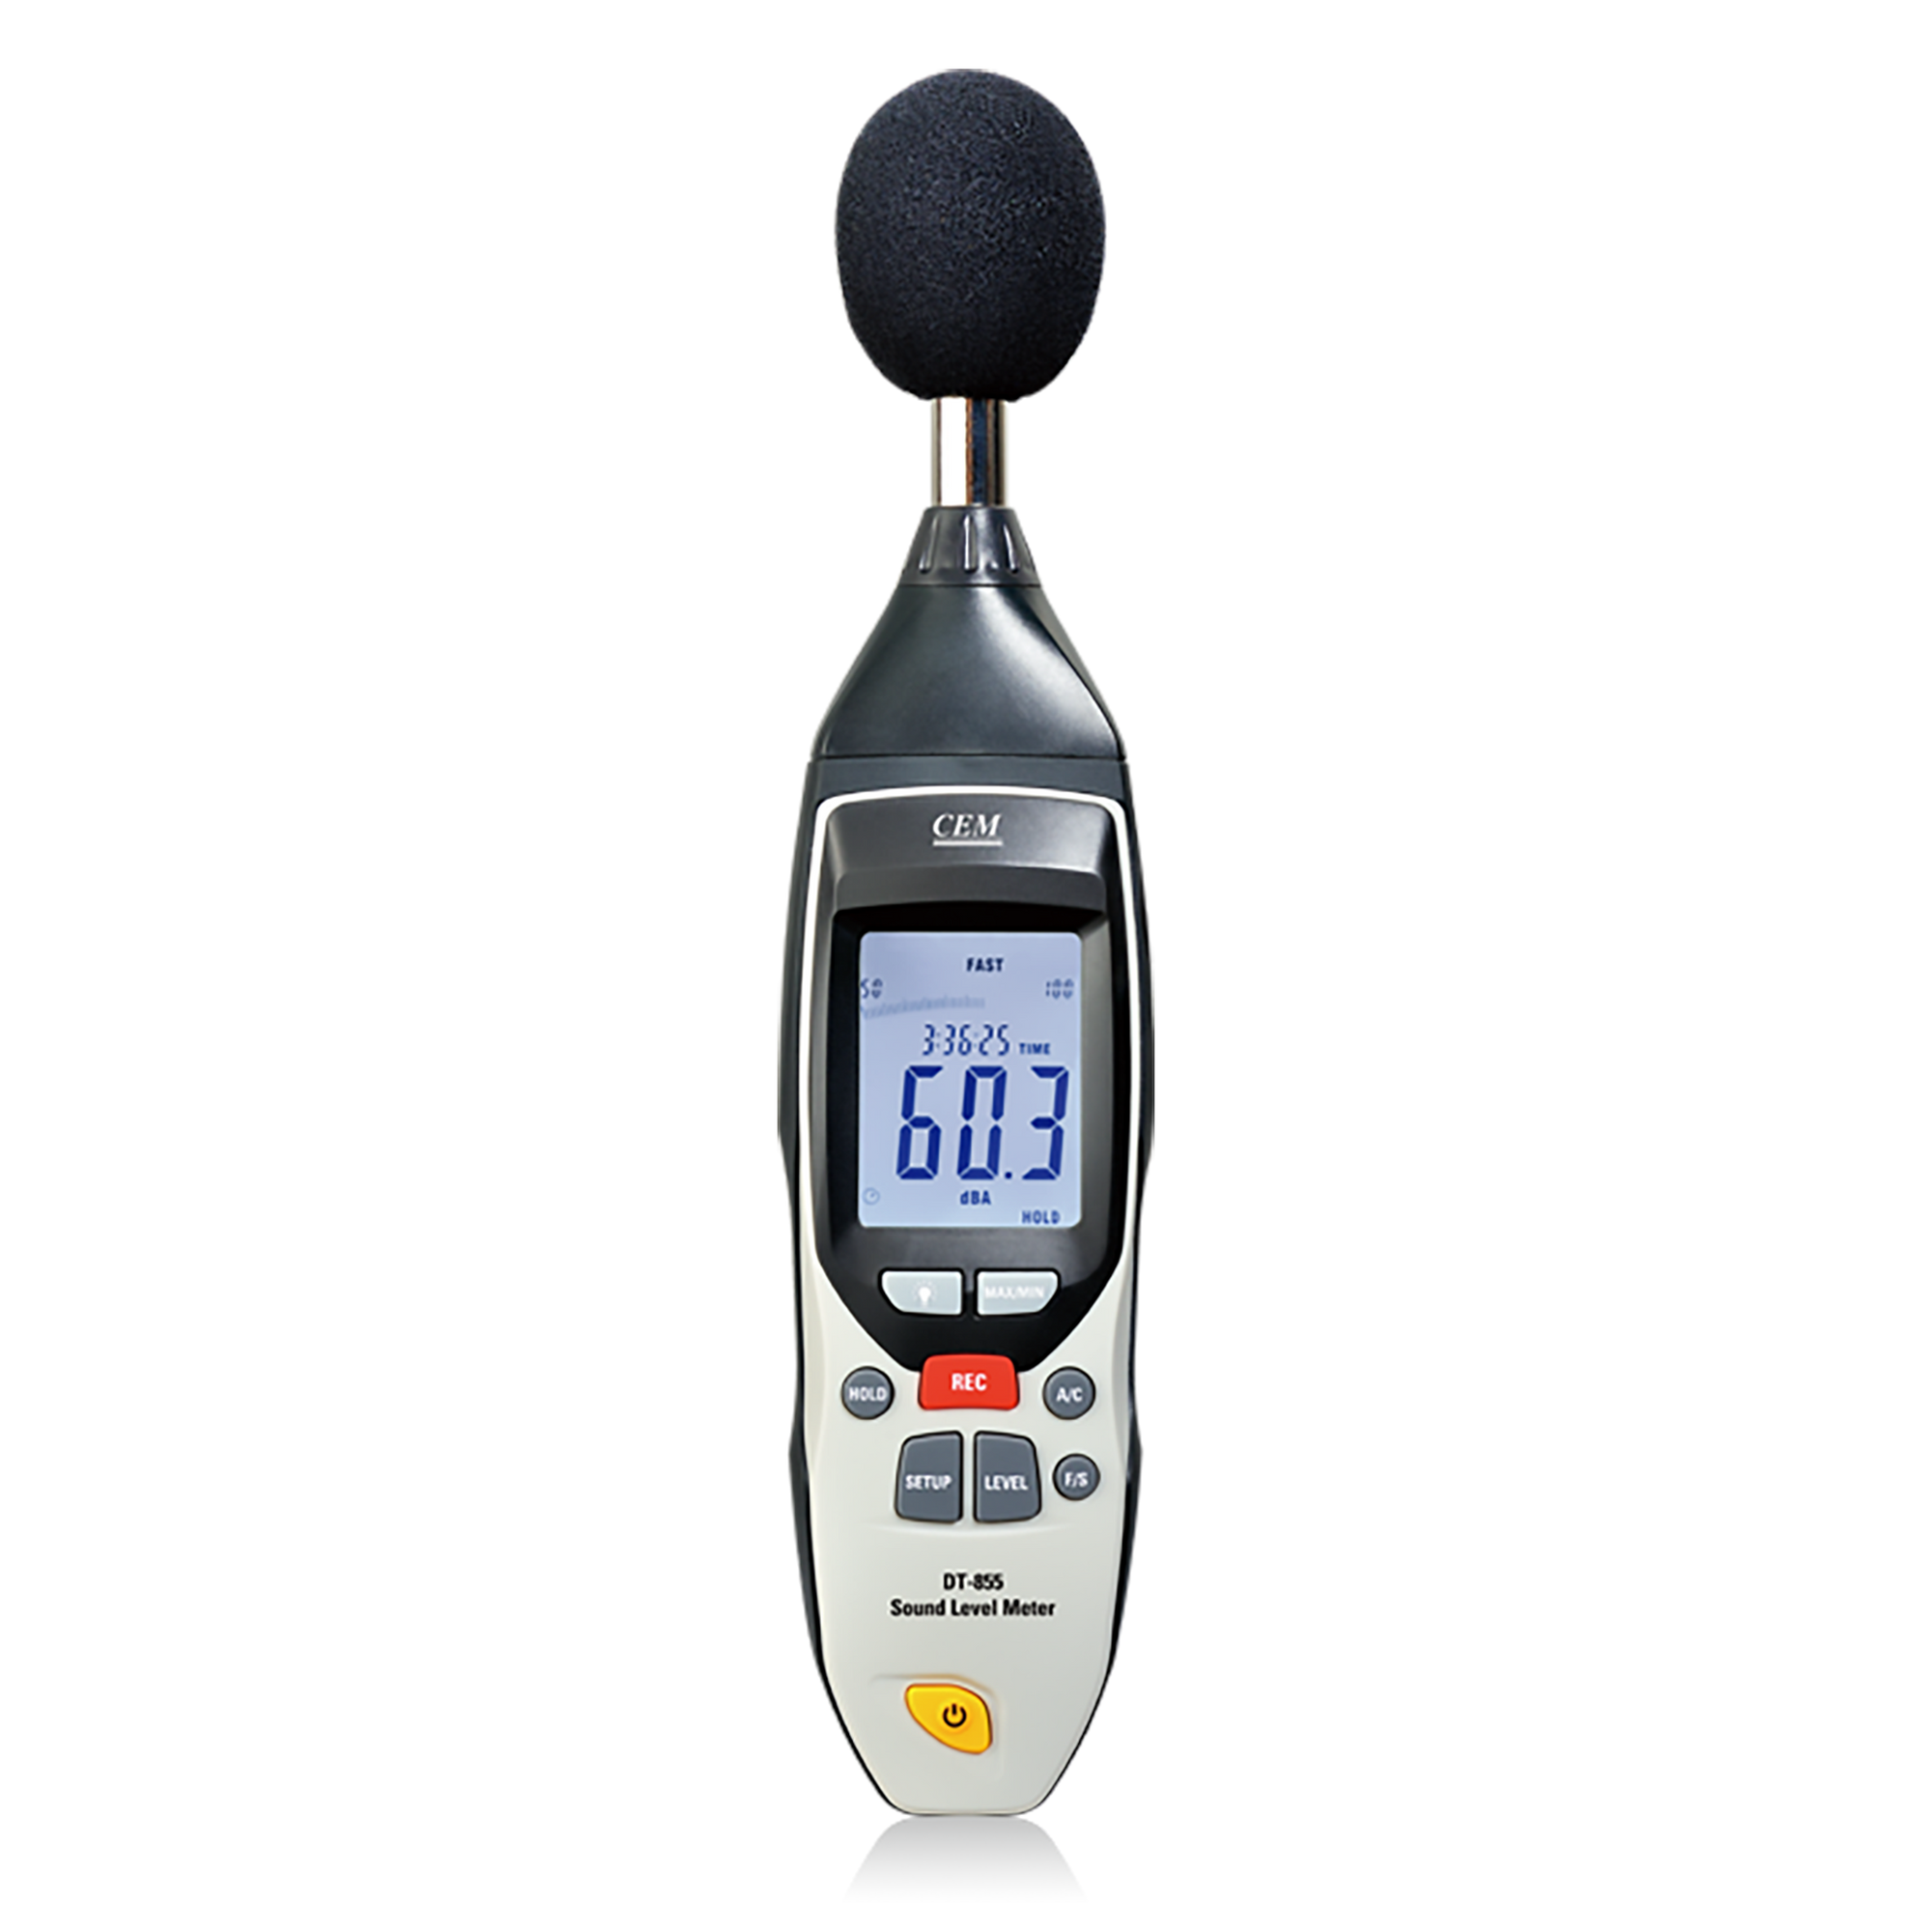 CEM DT-855 Sound and Decibel Meter